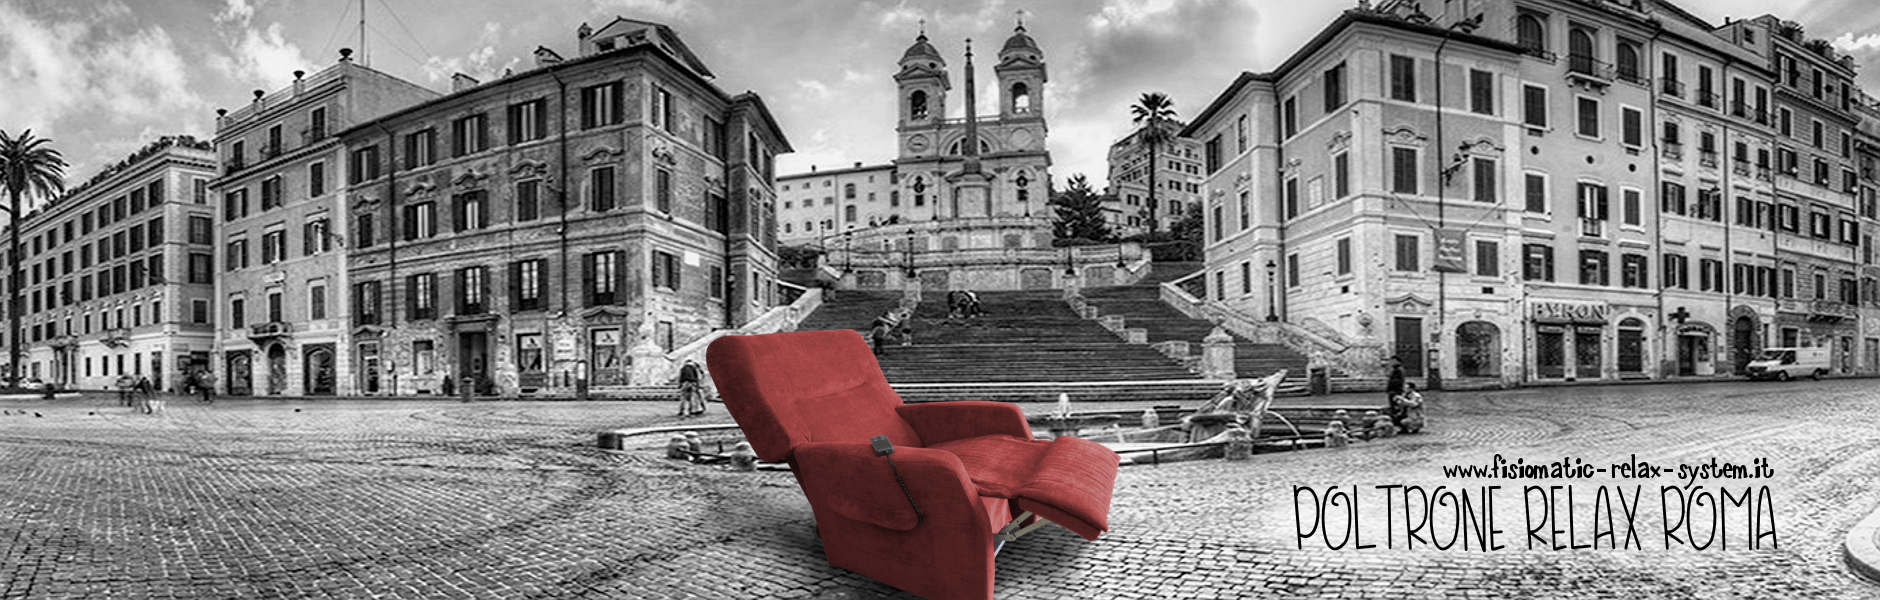 slide-poltrone-relax-roma